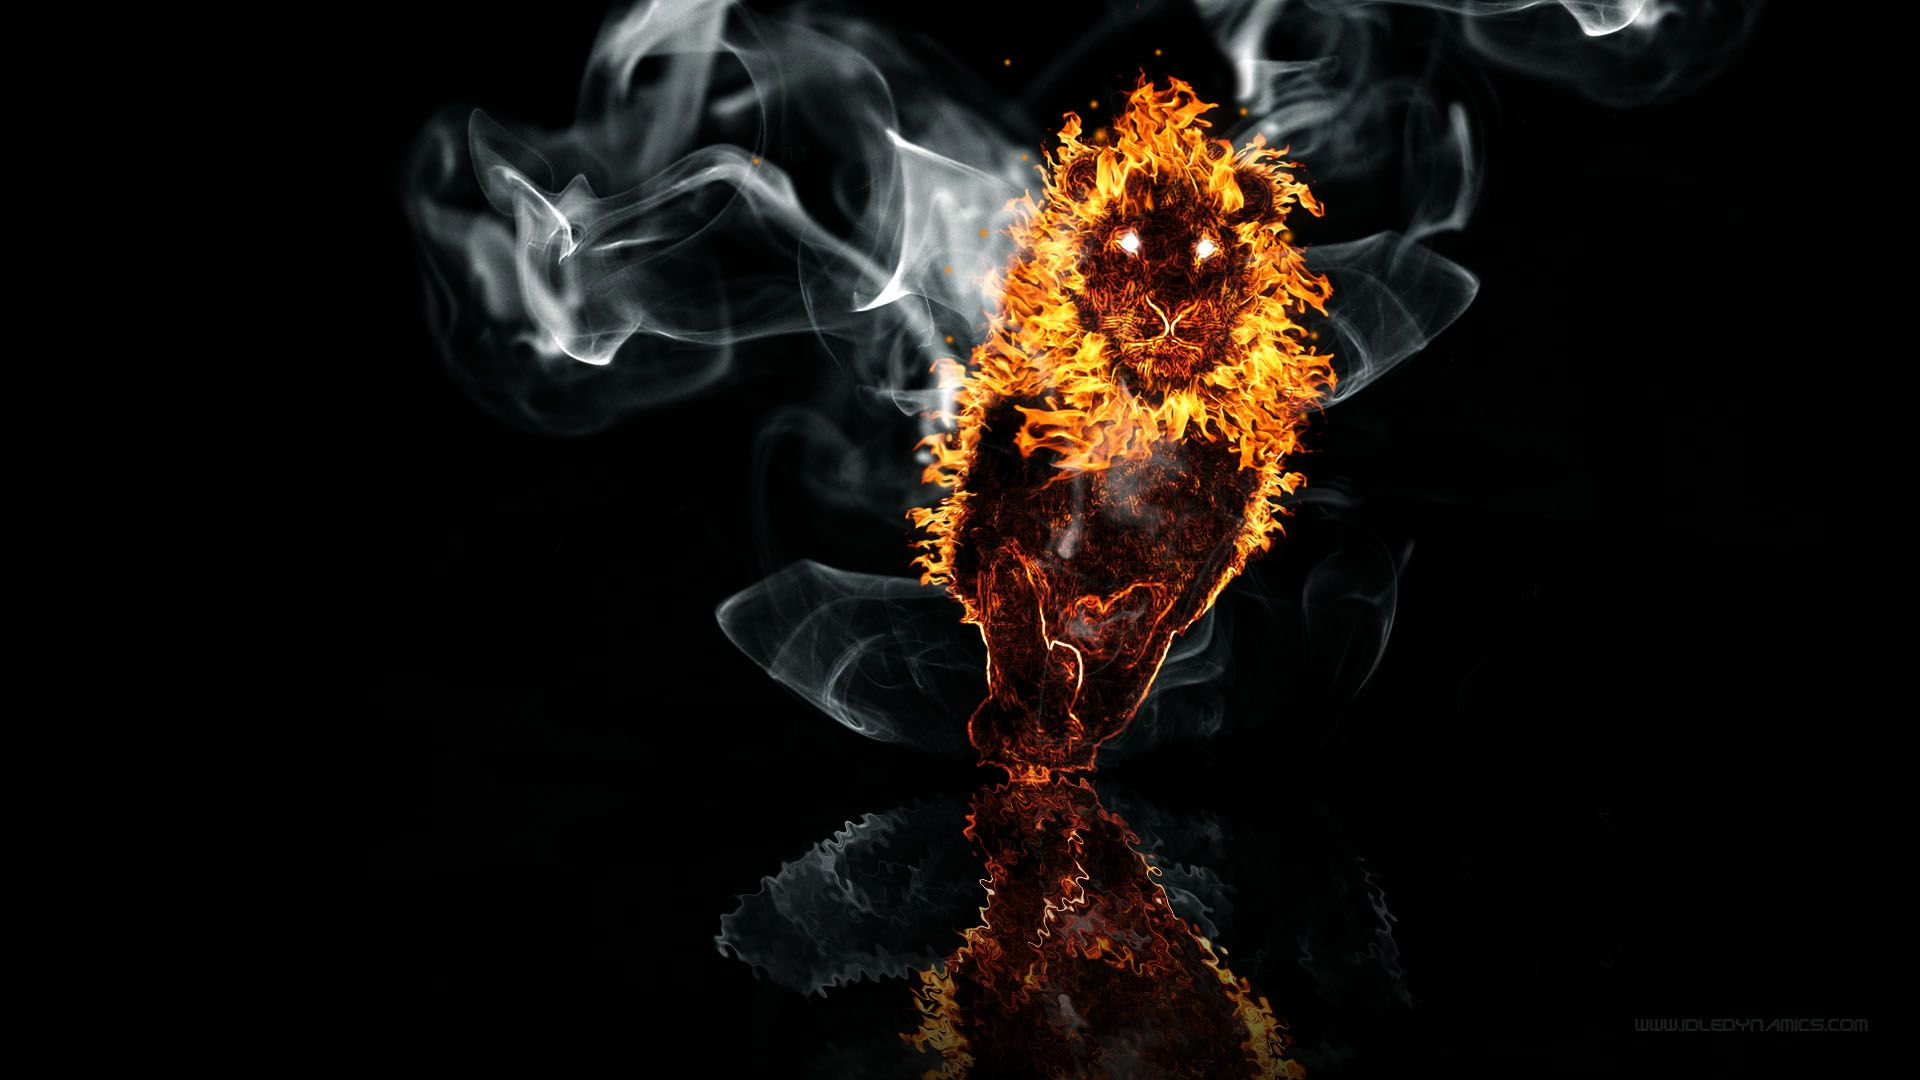 1 Lion Fire On The Water HD Wallpapers | Backgrounds ...